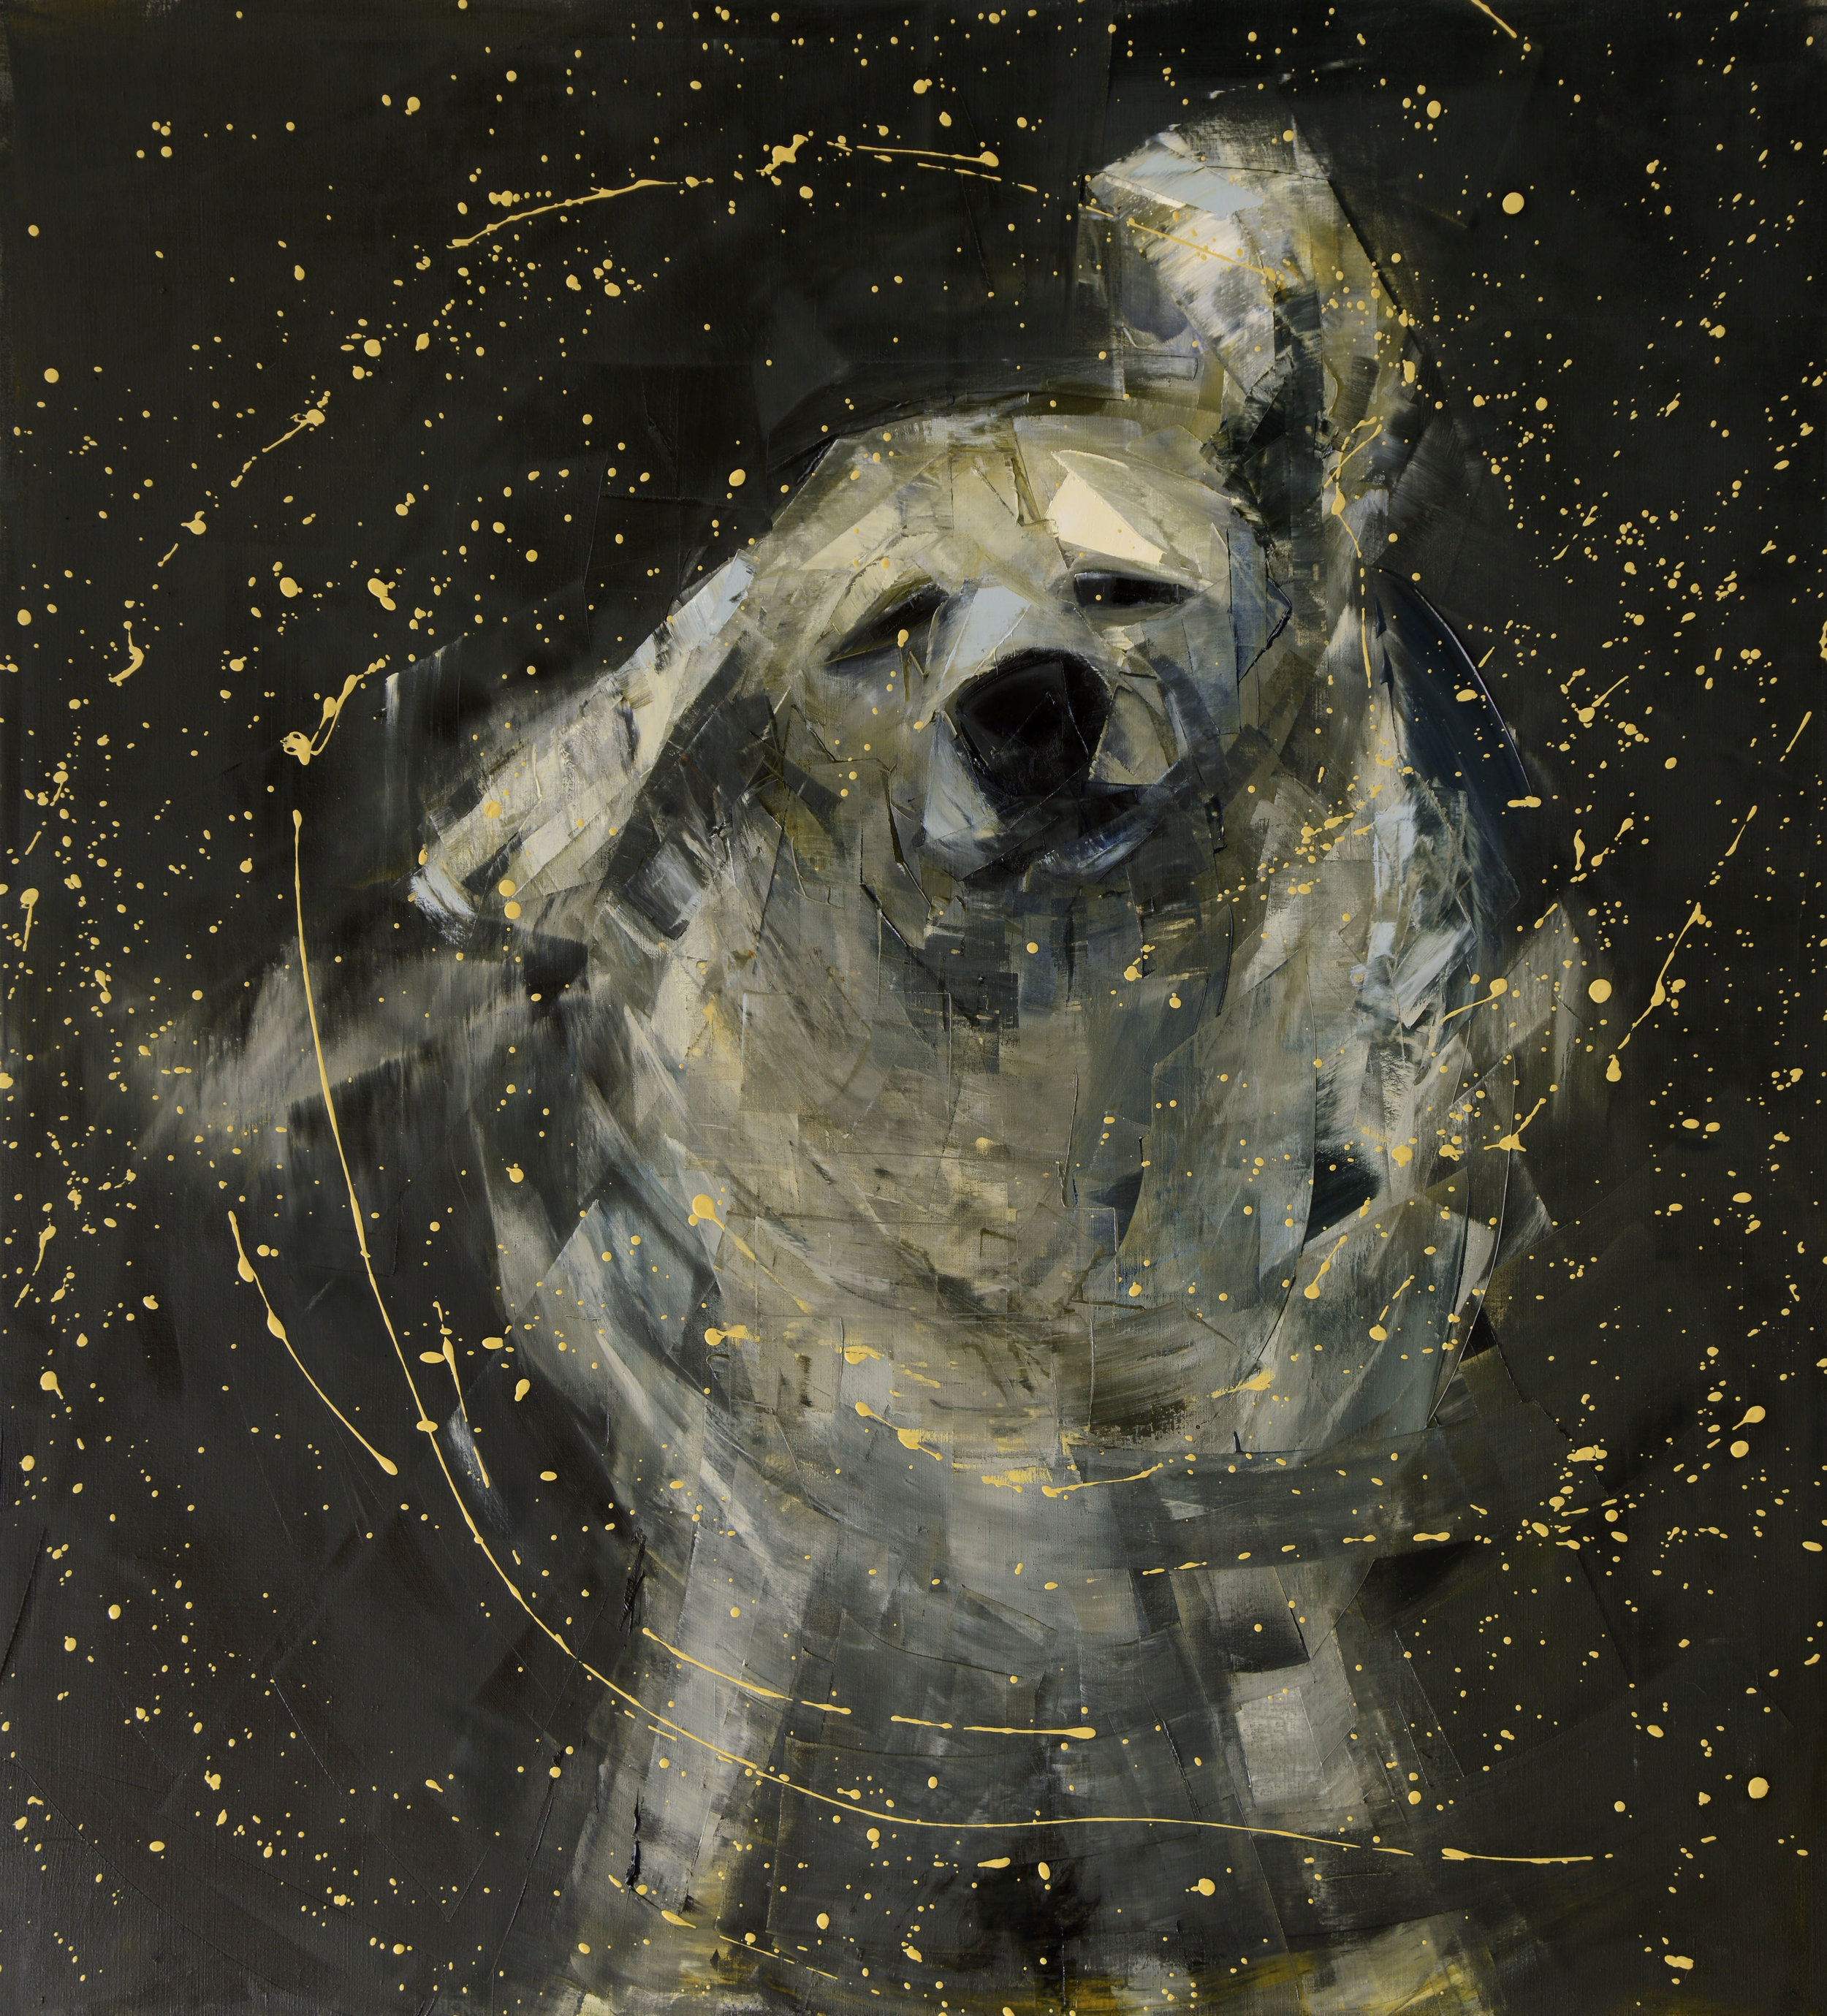 SHAKE NO. 3 (BLACK AND GOLD)   -PRIVATE COLLECTION-  64 x 58 inches  oil and wax on linen